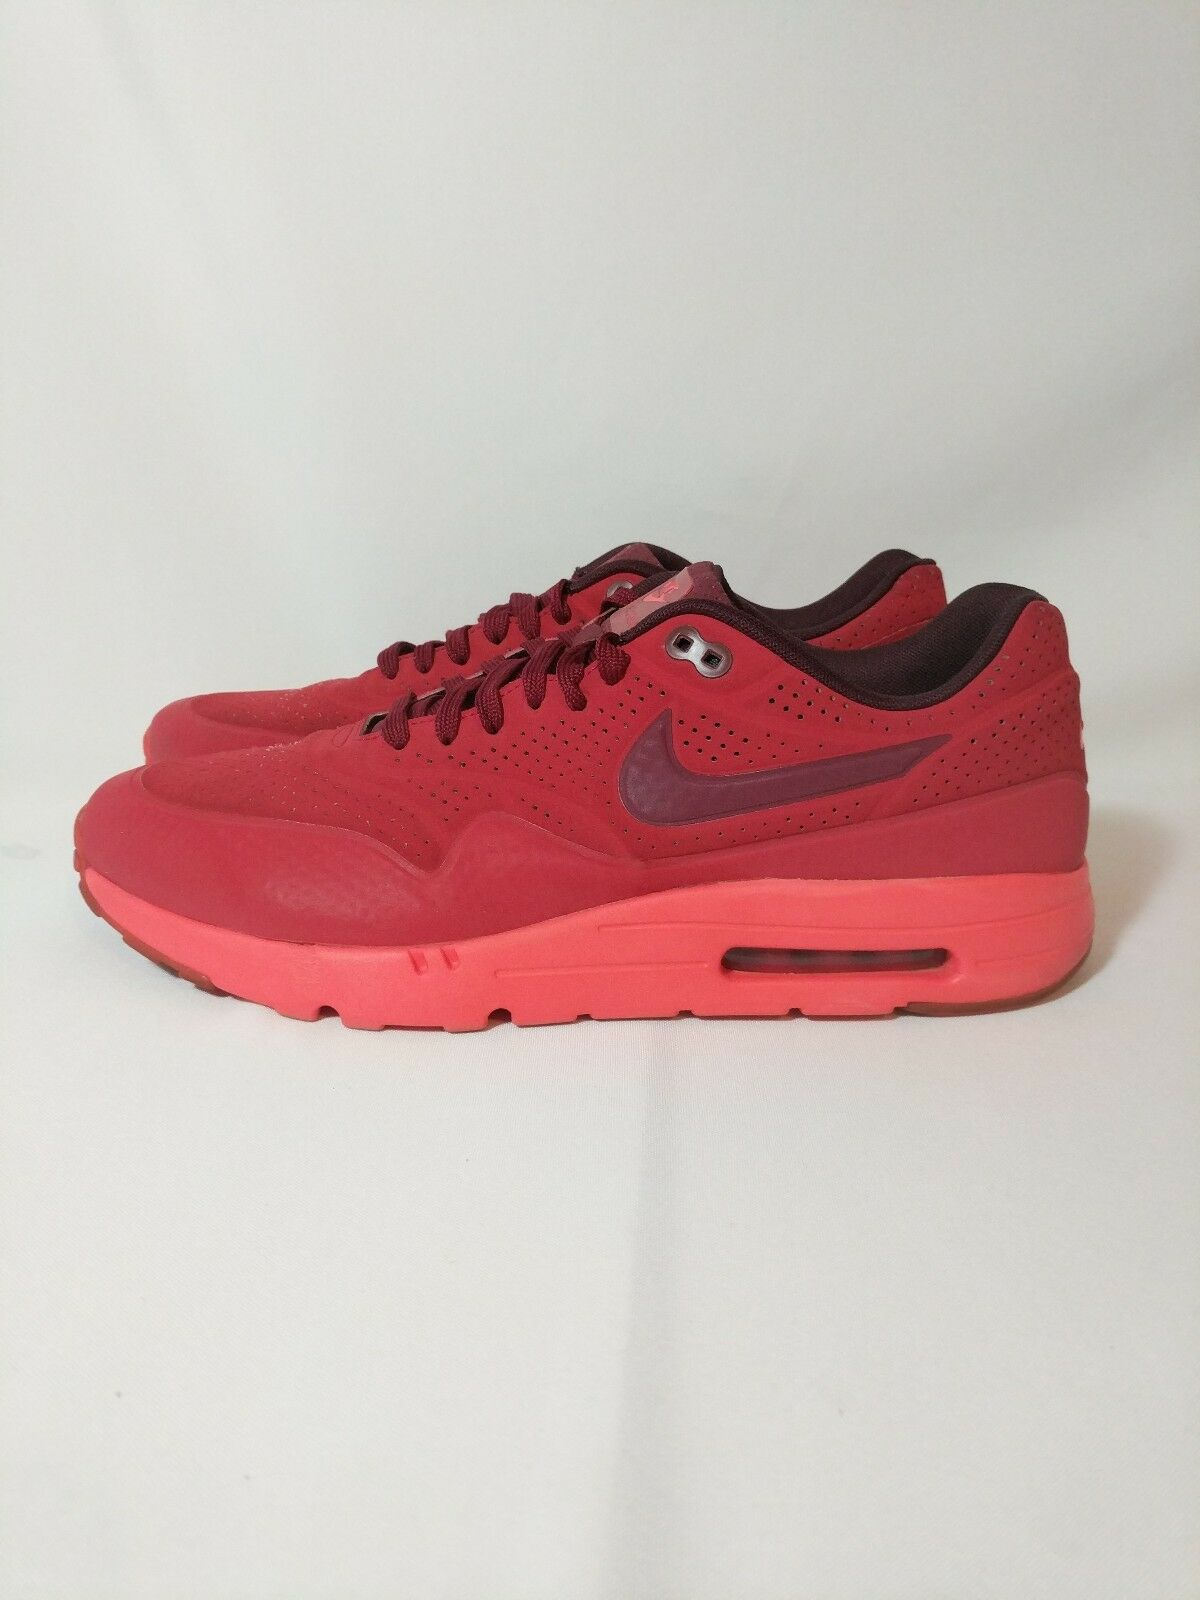 Nike Air Max 1 Ultra Moire Uomo size 13 705297-600 Gym Red/Team Red/UnvrsRed